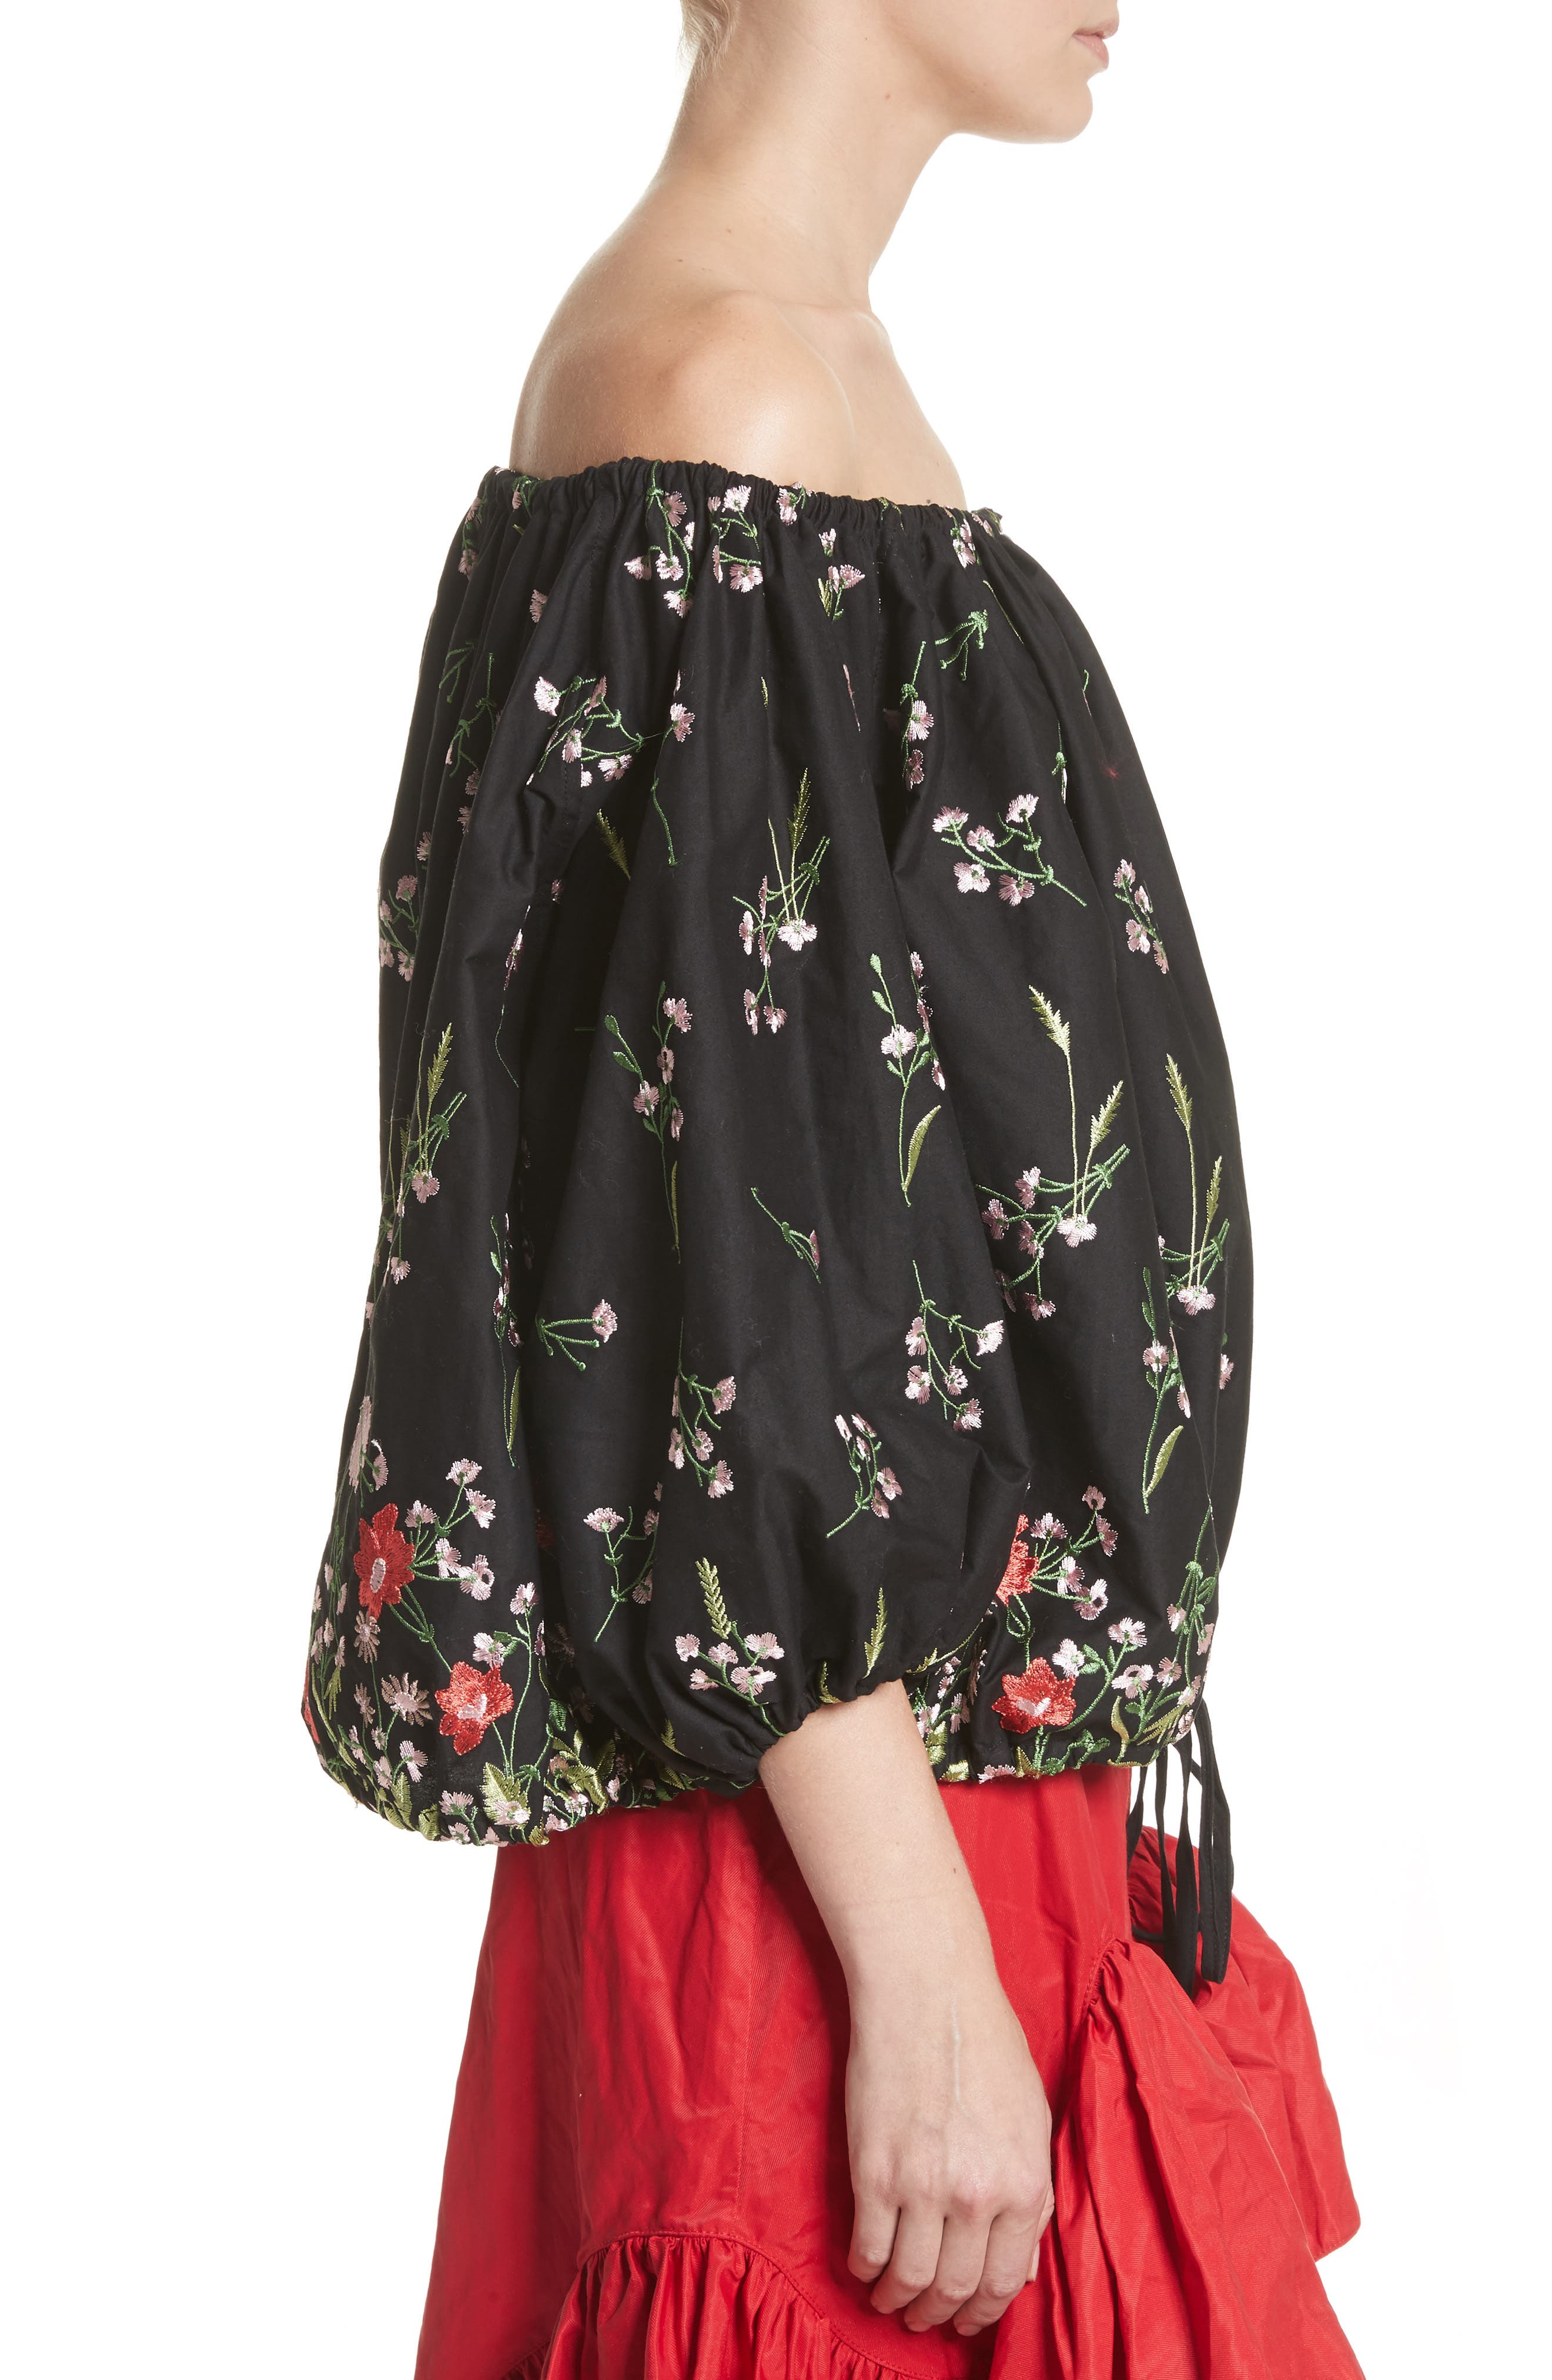 Marques'Almeida Embroidered Off the Shoulder Top,                             Alternate thumbnail 3, color,                             Black/Multi